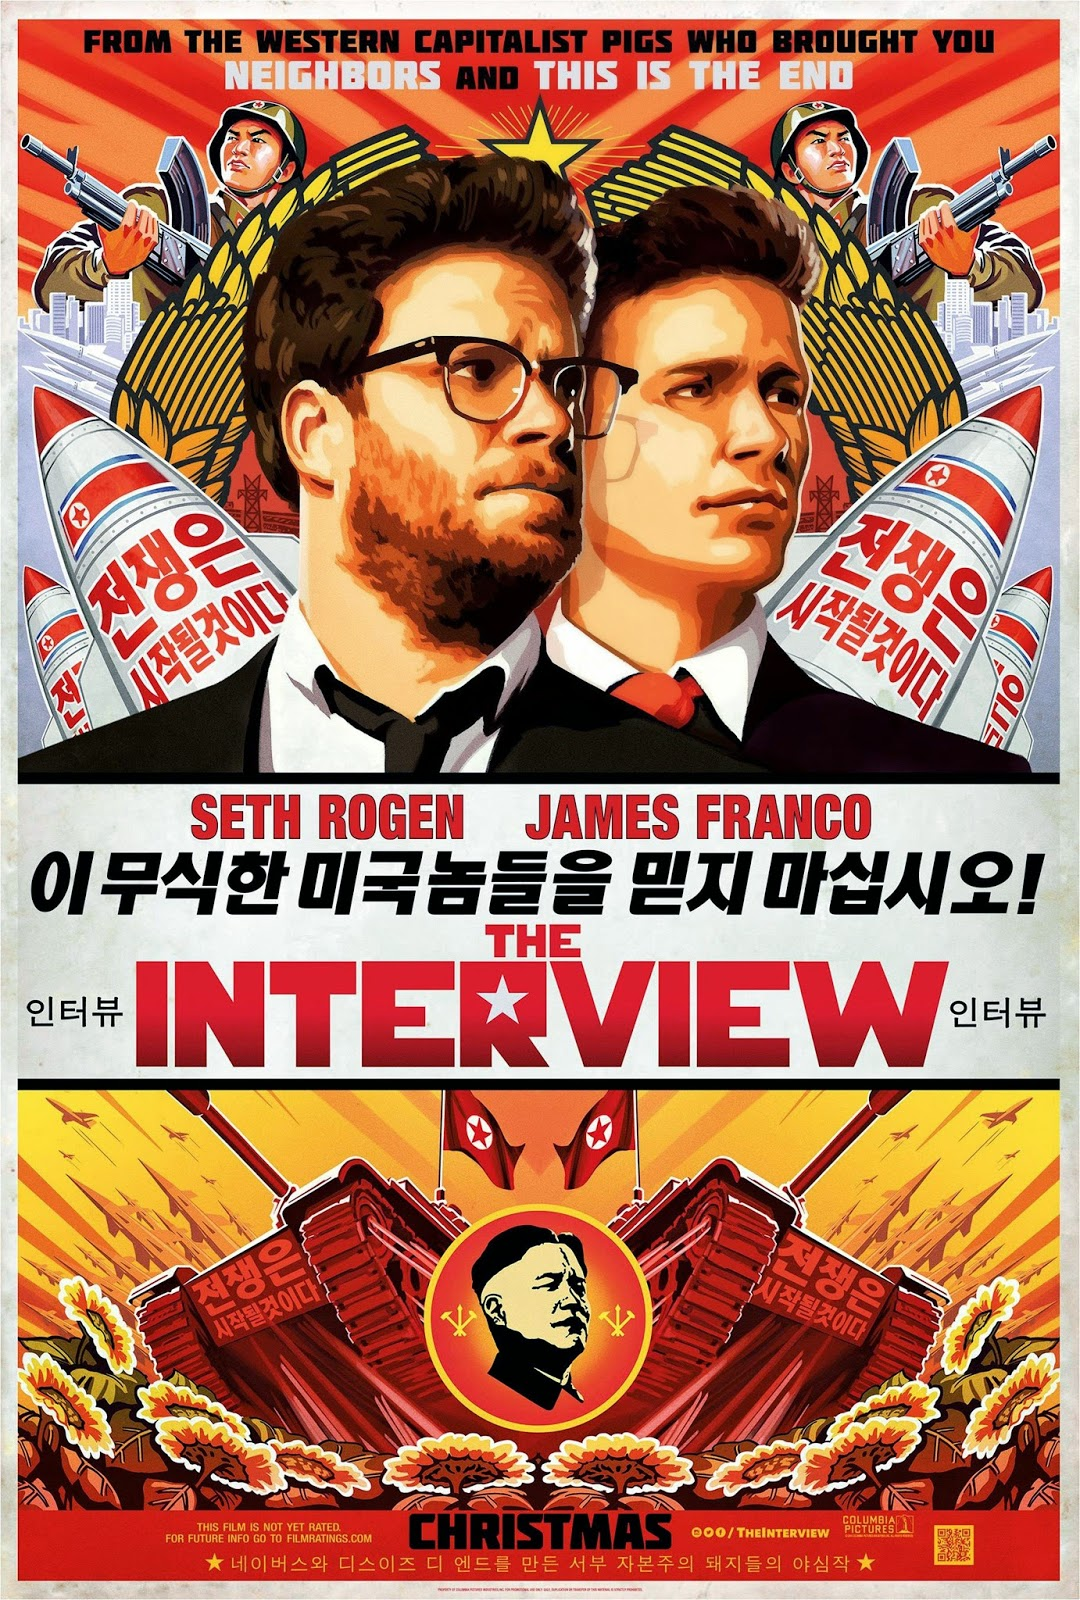 'The Interview' is more of the same for Rogen and Franco